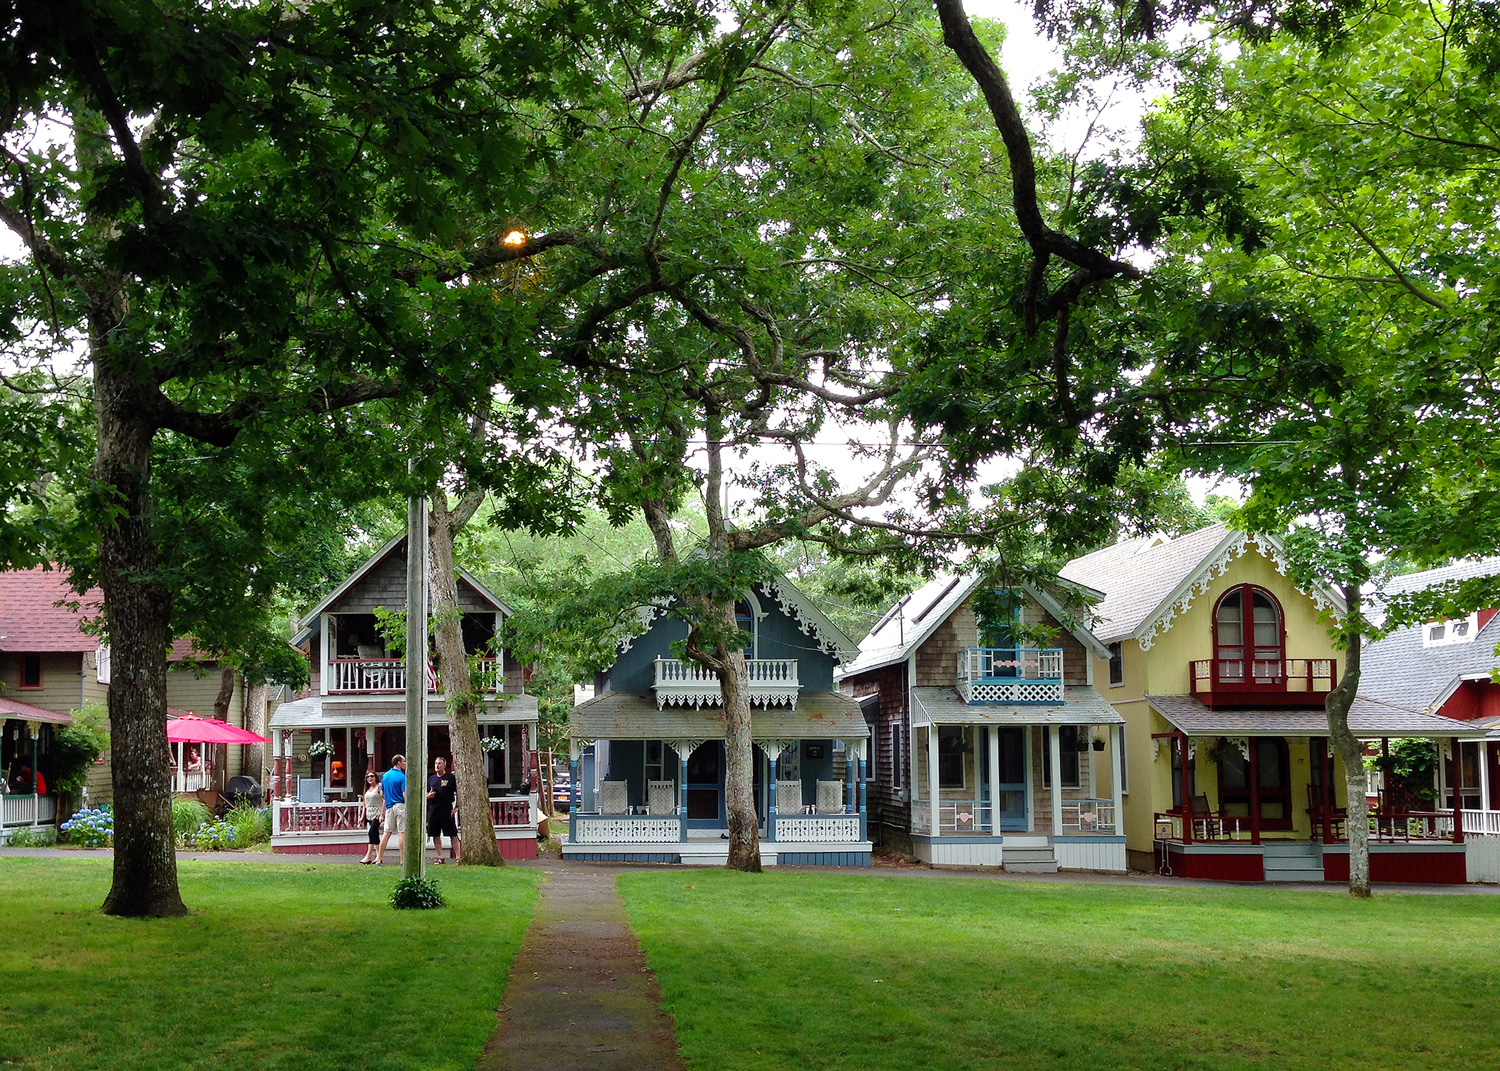 Gingerbread cottages in Oak Bluffs, Martha's Vineyard, USA